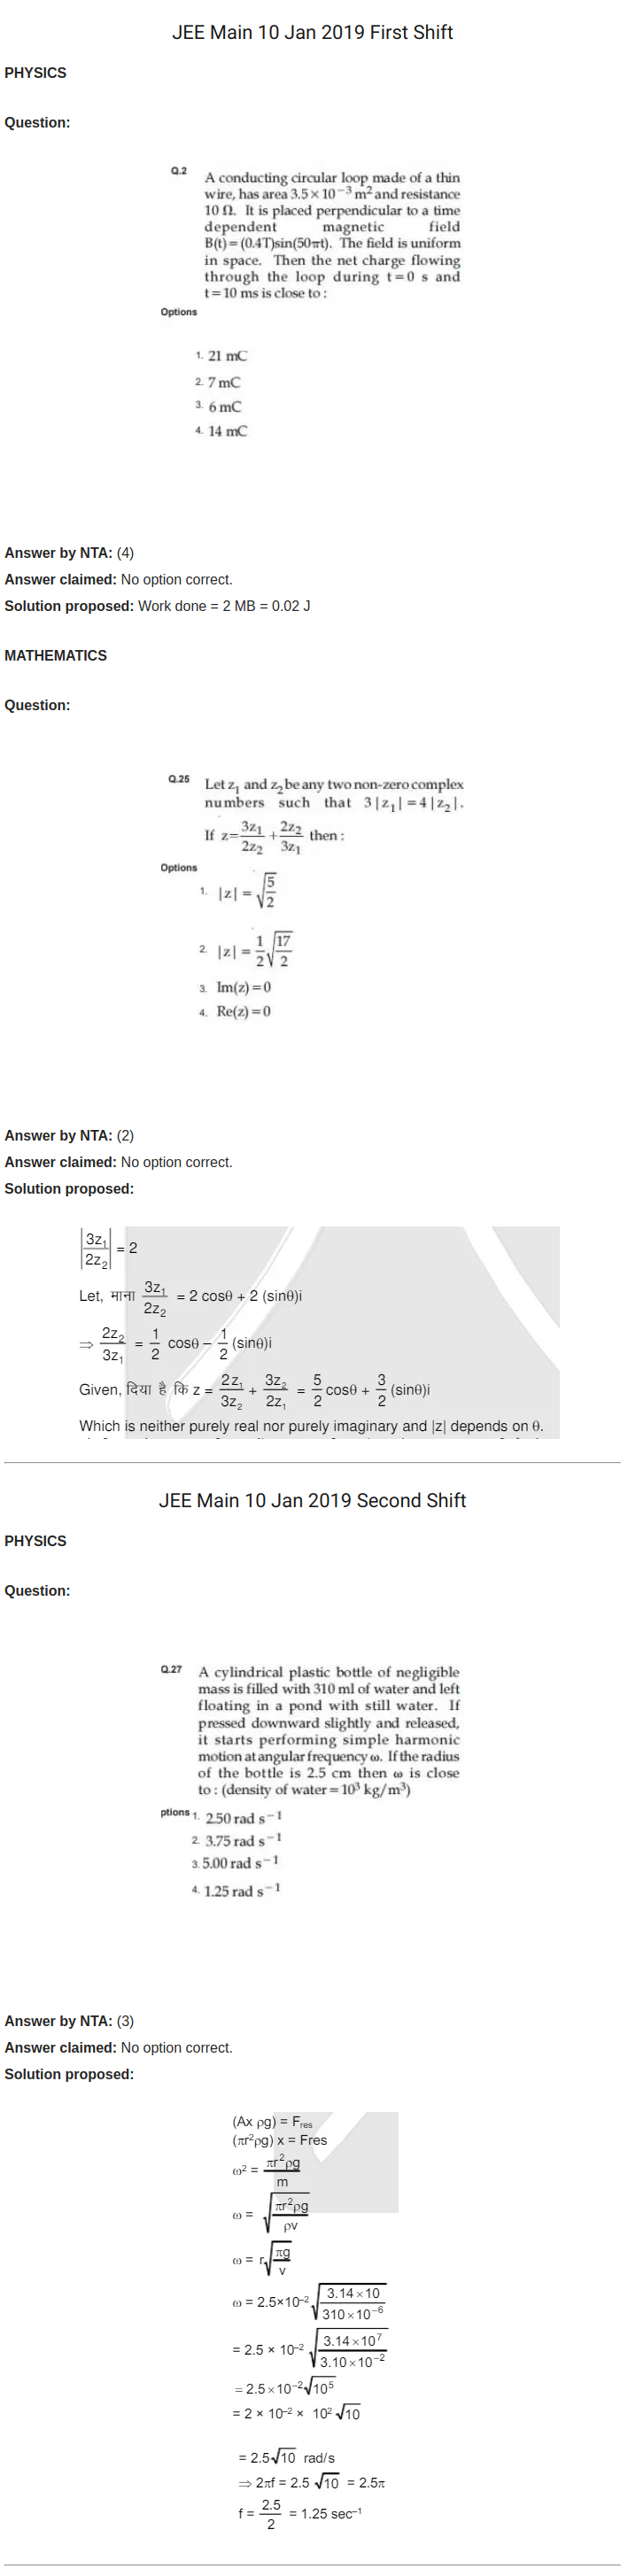 JEE Main 2019 Wrong Questions in 10th Jan 2019